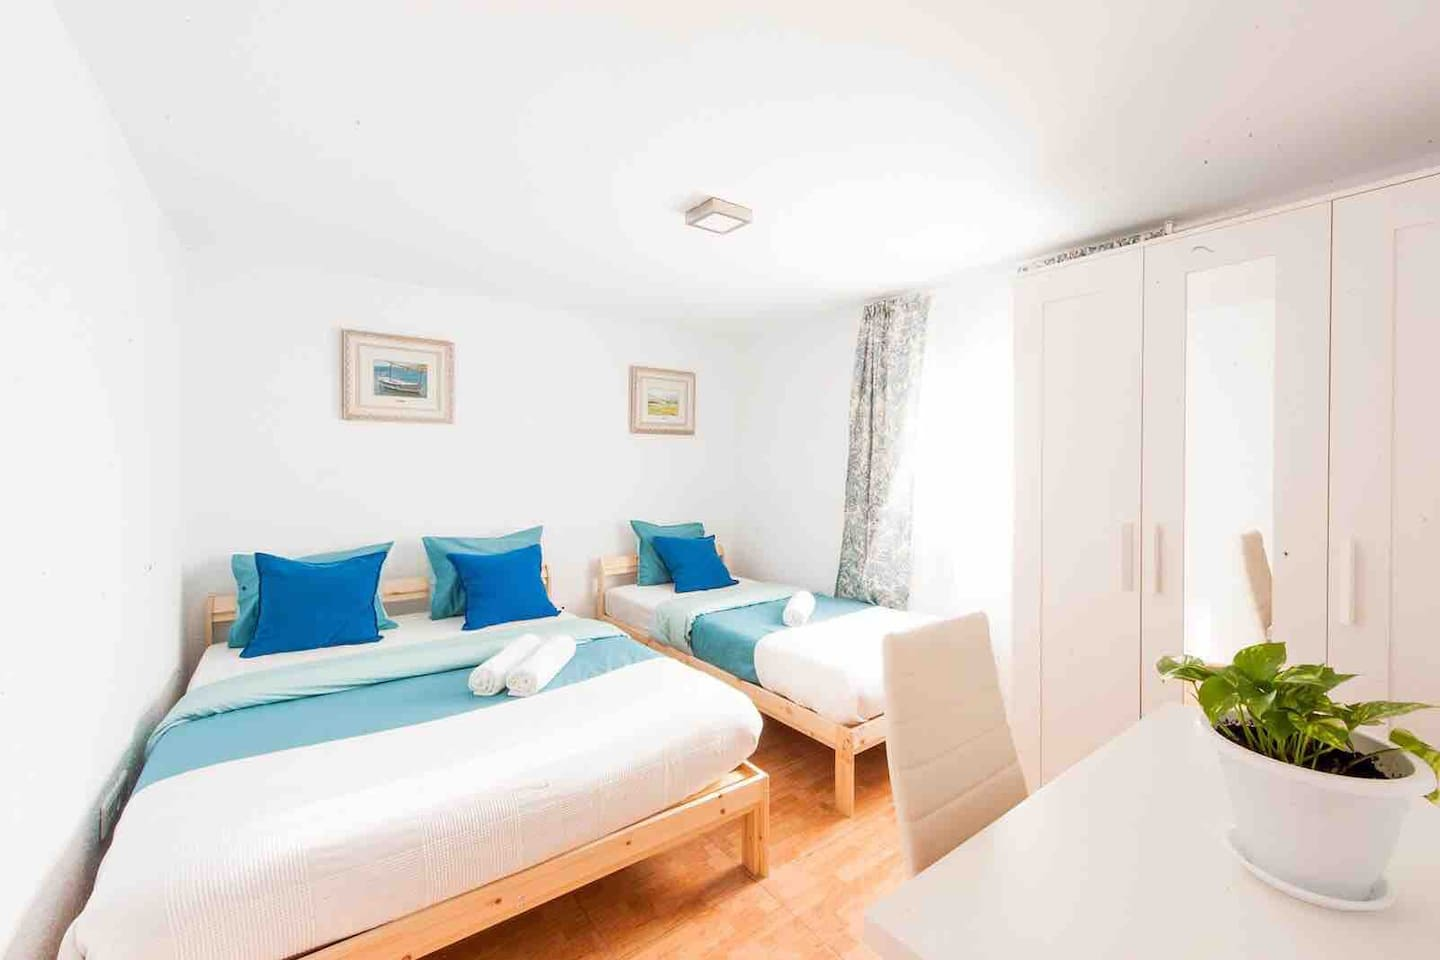 Your private room with double bed and one individual bed. The bedroom's door has a lock.